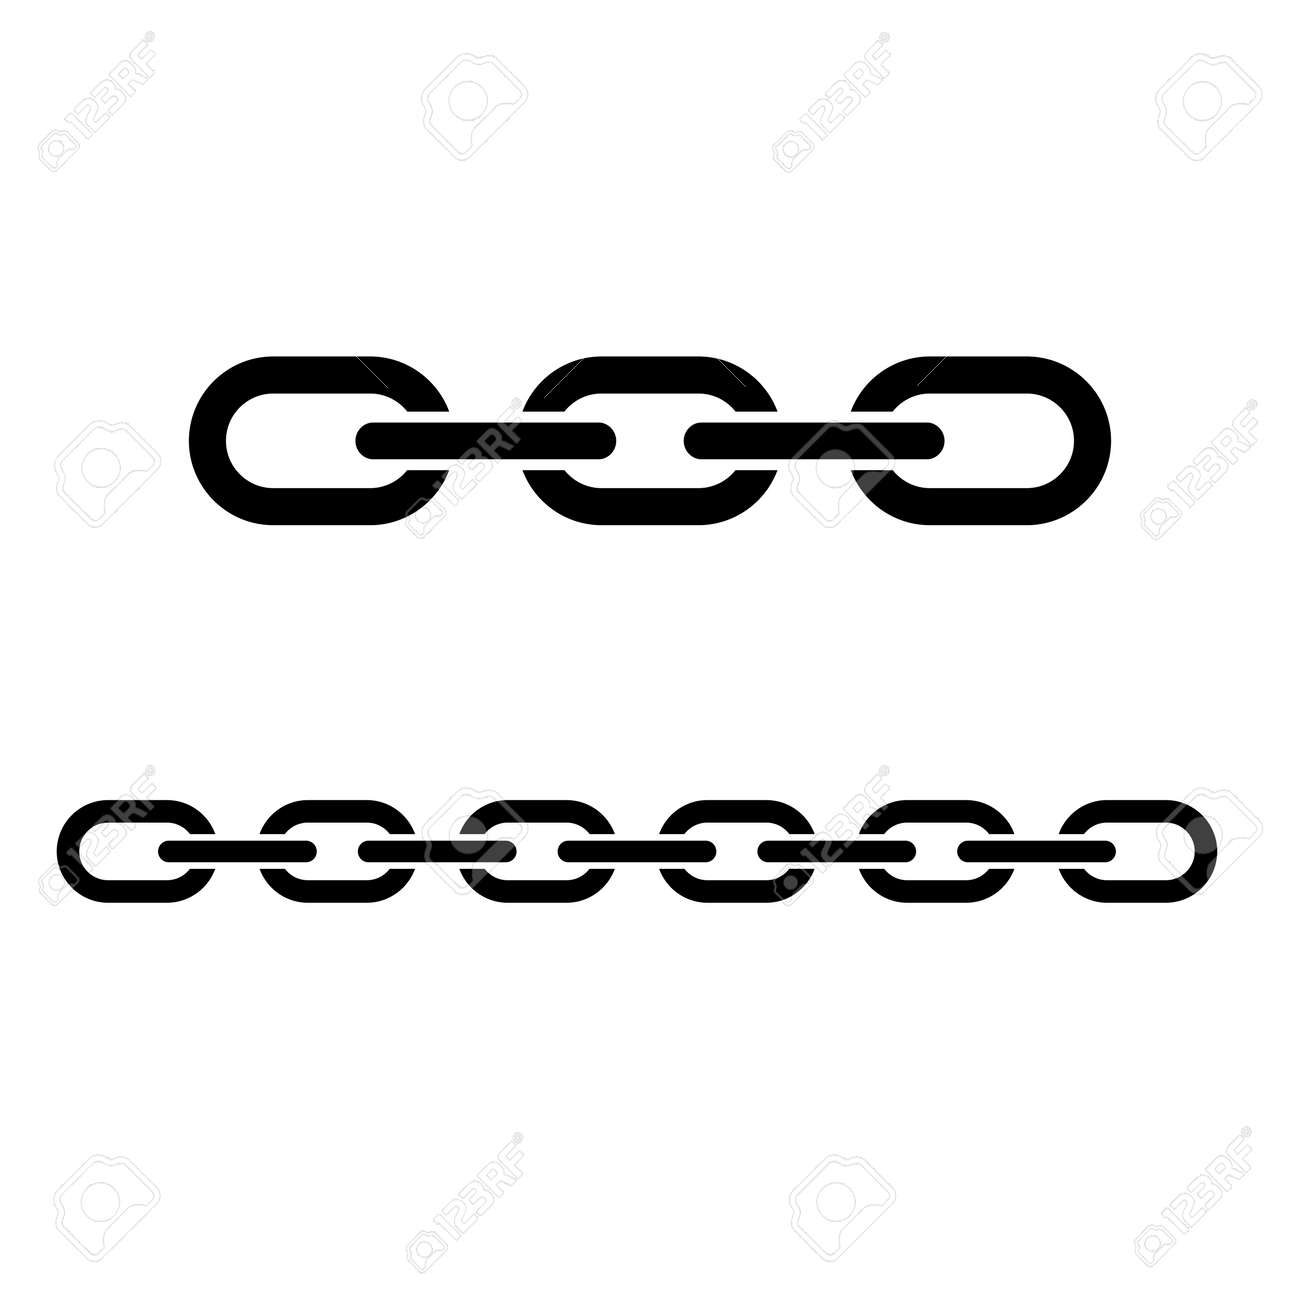 Chain icon  Simple metal chain with secure links  Vector Illustration